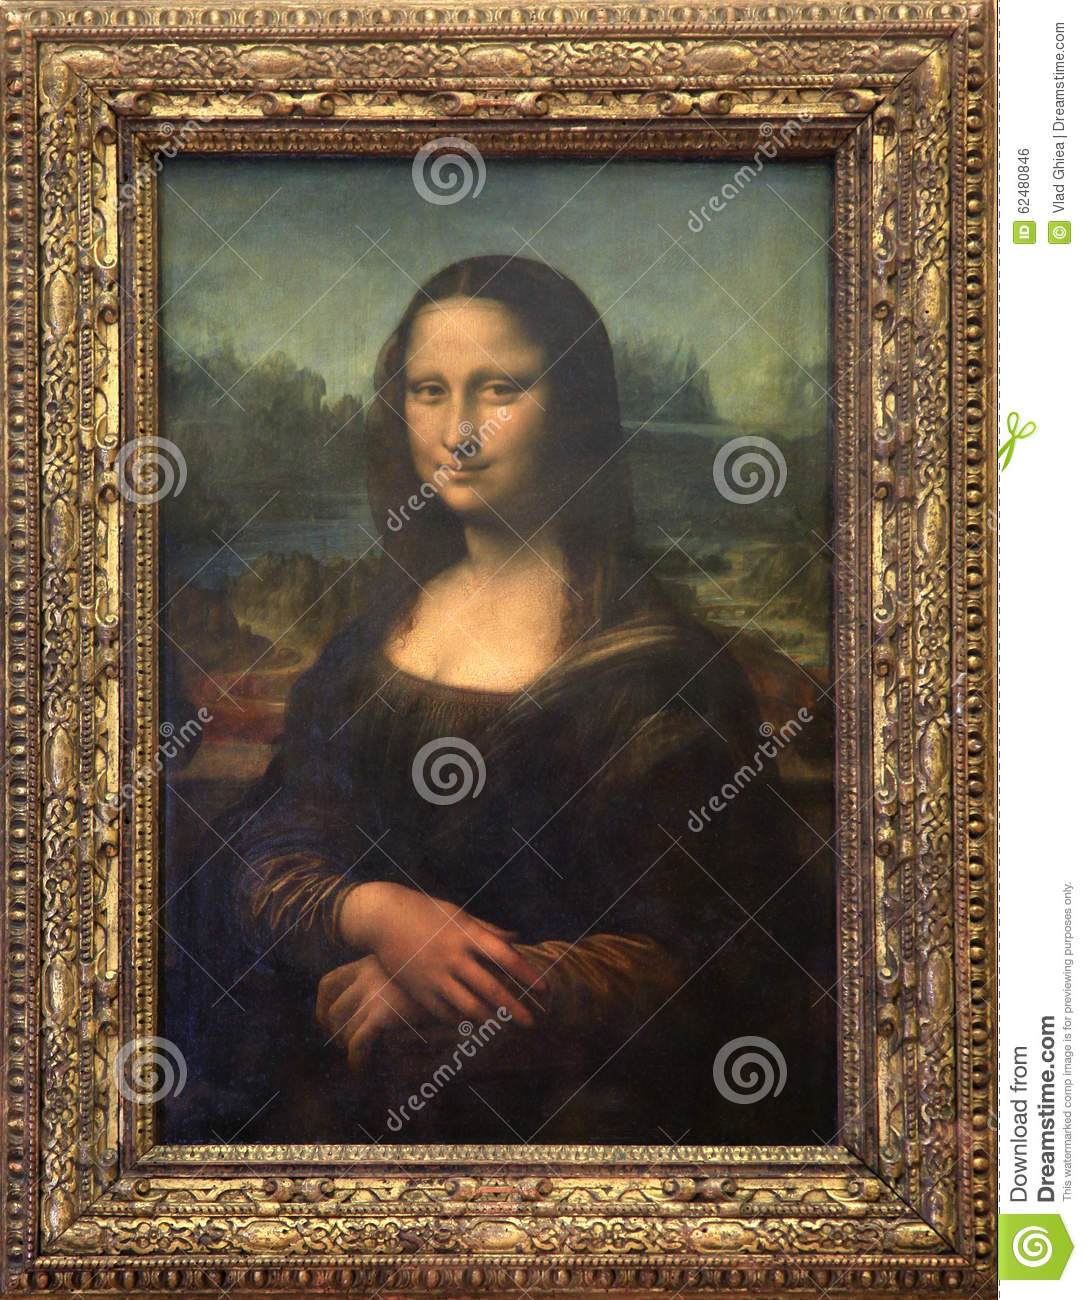 Mona Lisa Canvas At Louvre Museum In Paris Editorial Photo ...